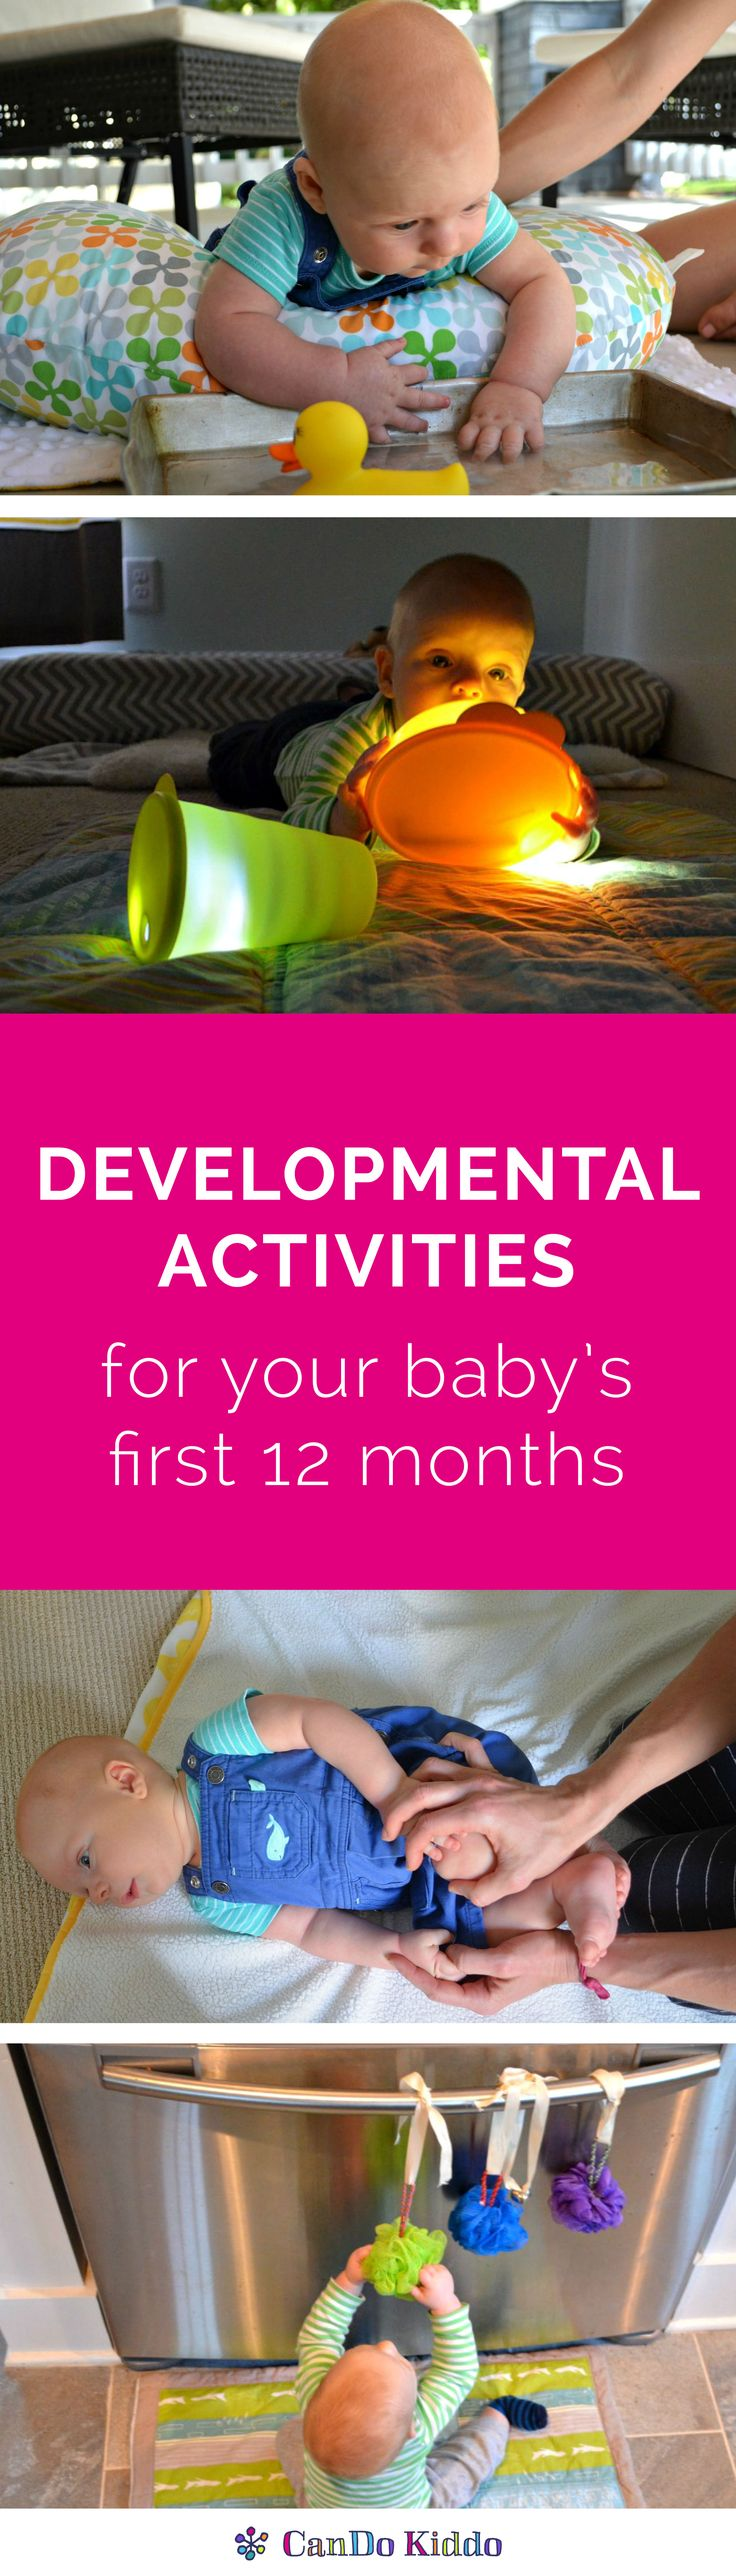 Stop scouring Pinterest - get all the baby play activities you need for baby's first year in a convenient paperback or eBook 2 book bundle. Designed by a pediatric OT to help parents better understand their babies development through play that promotes baby milestones. CanDoKiddo.com